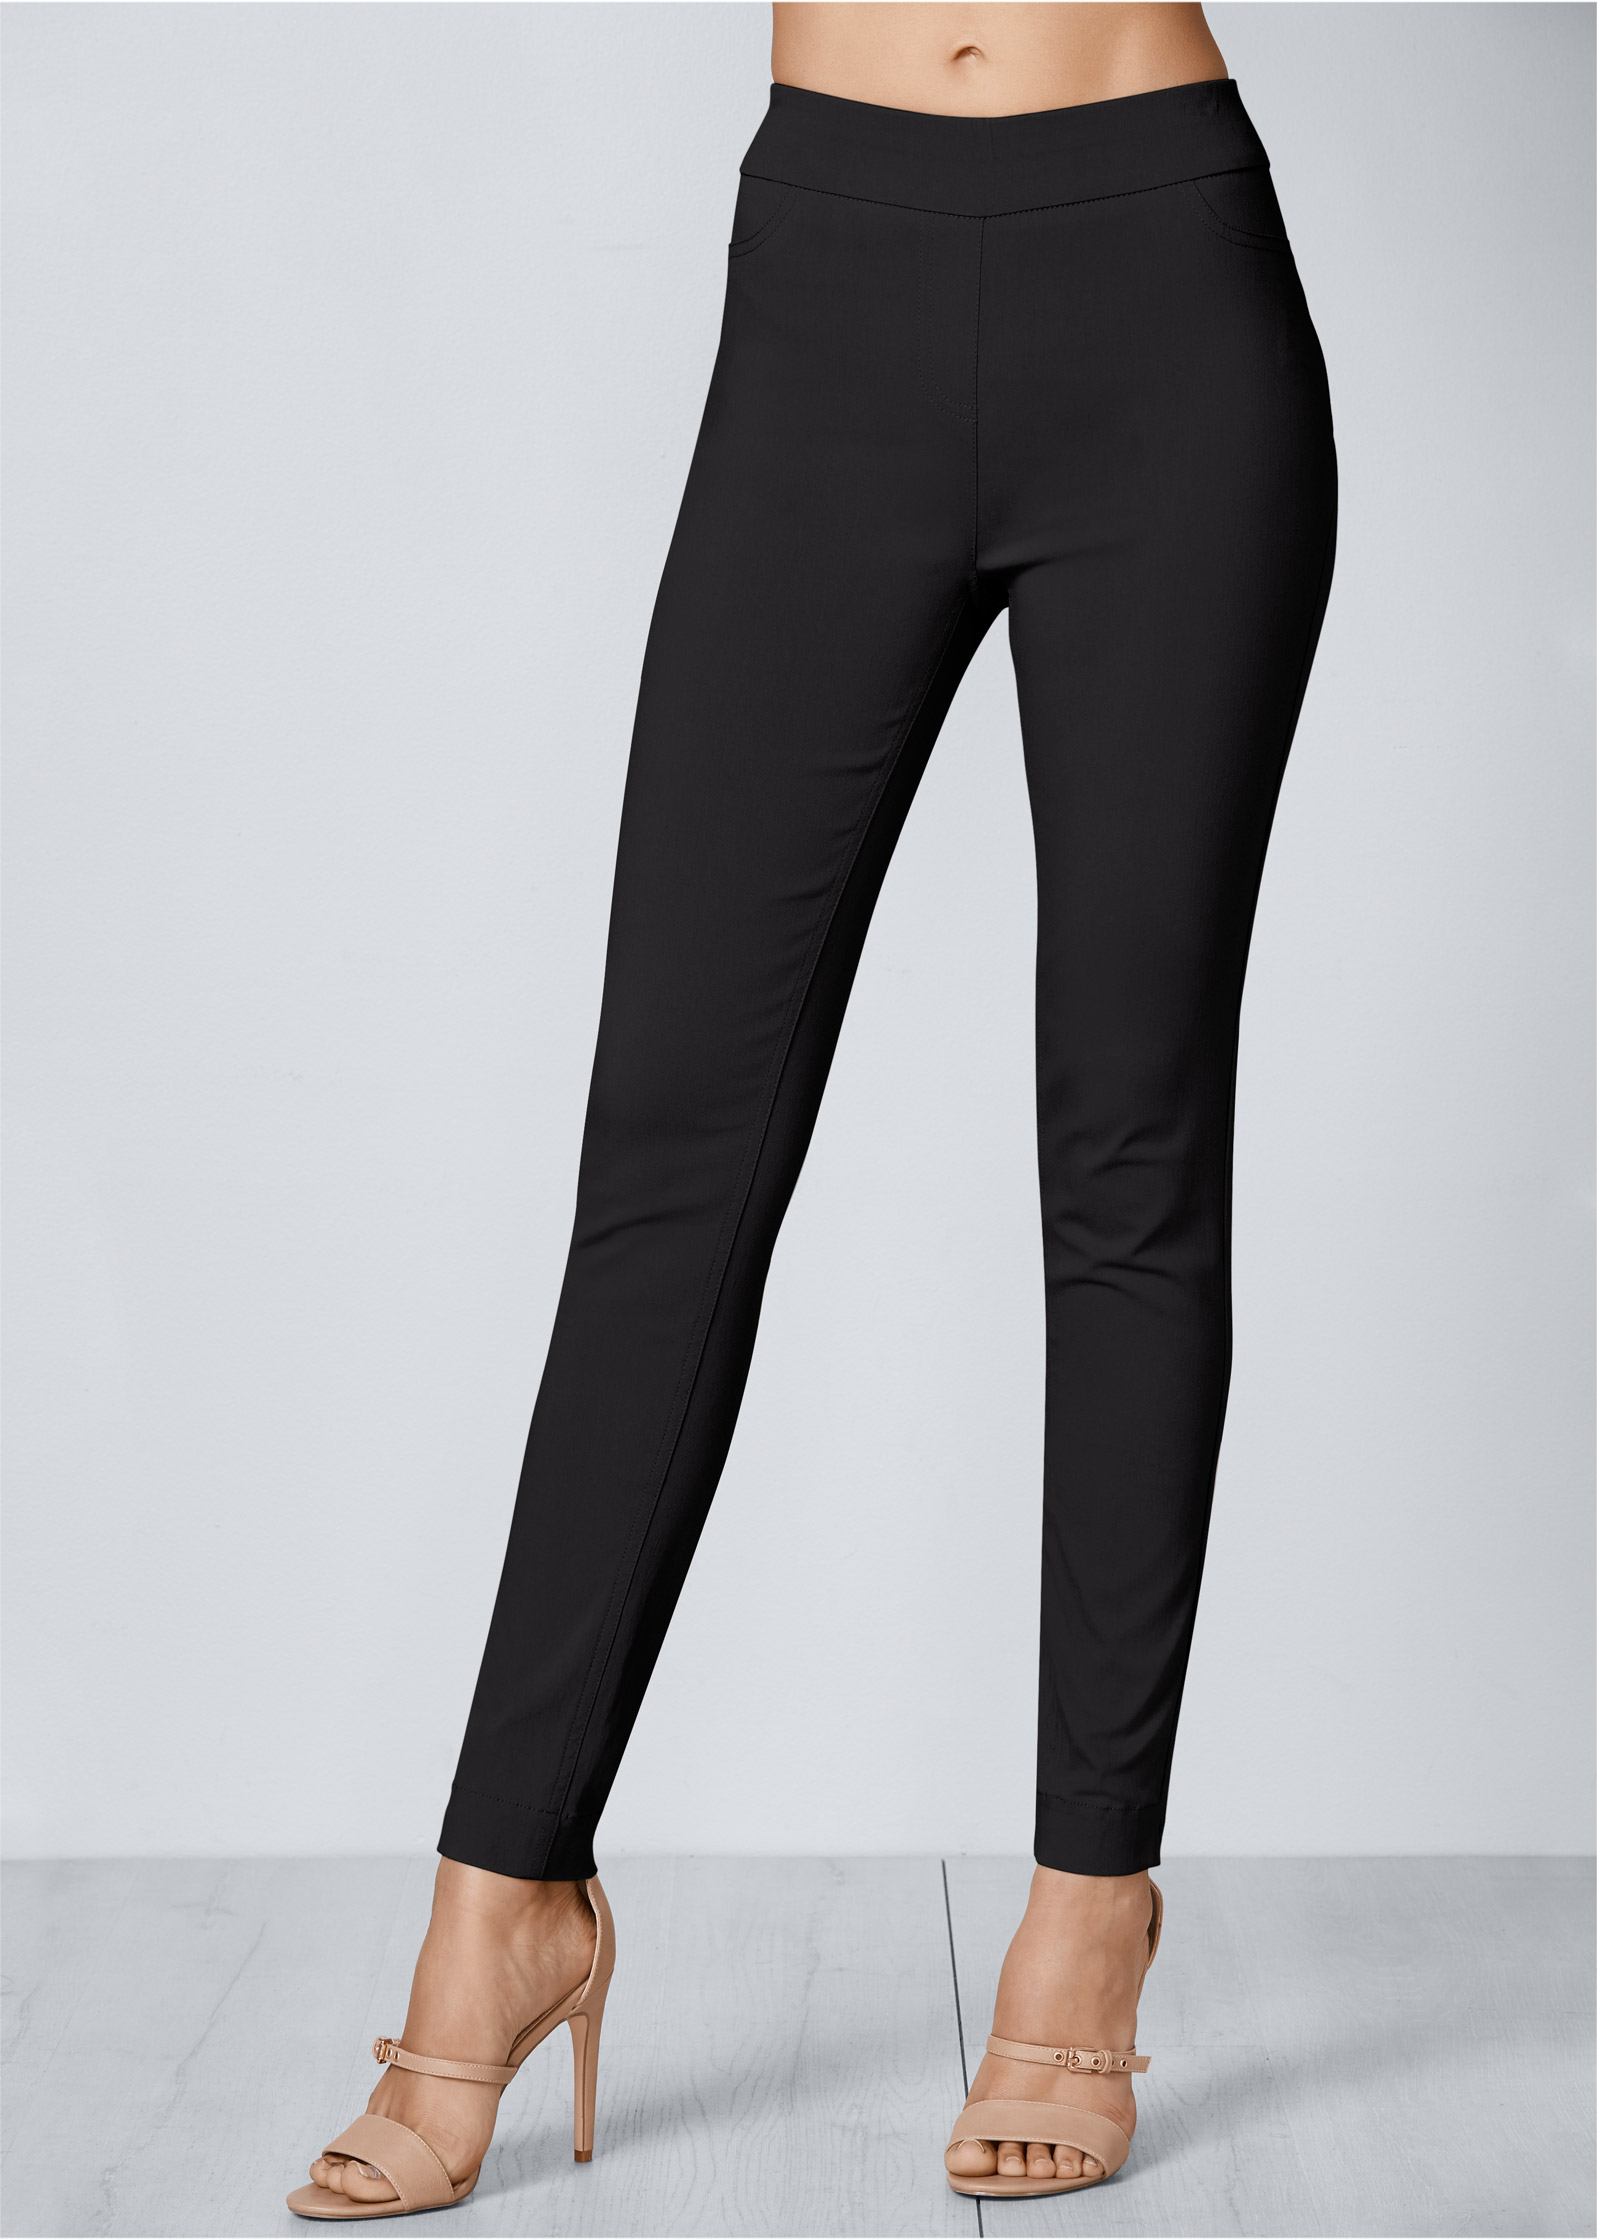 What are those tights that look like jeans but there tights?